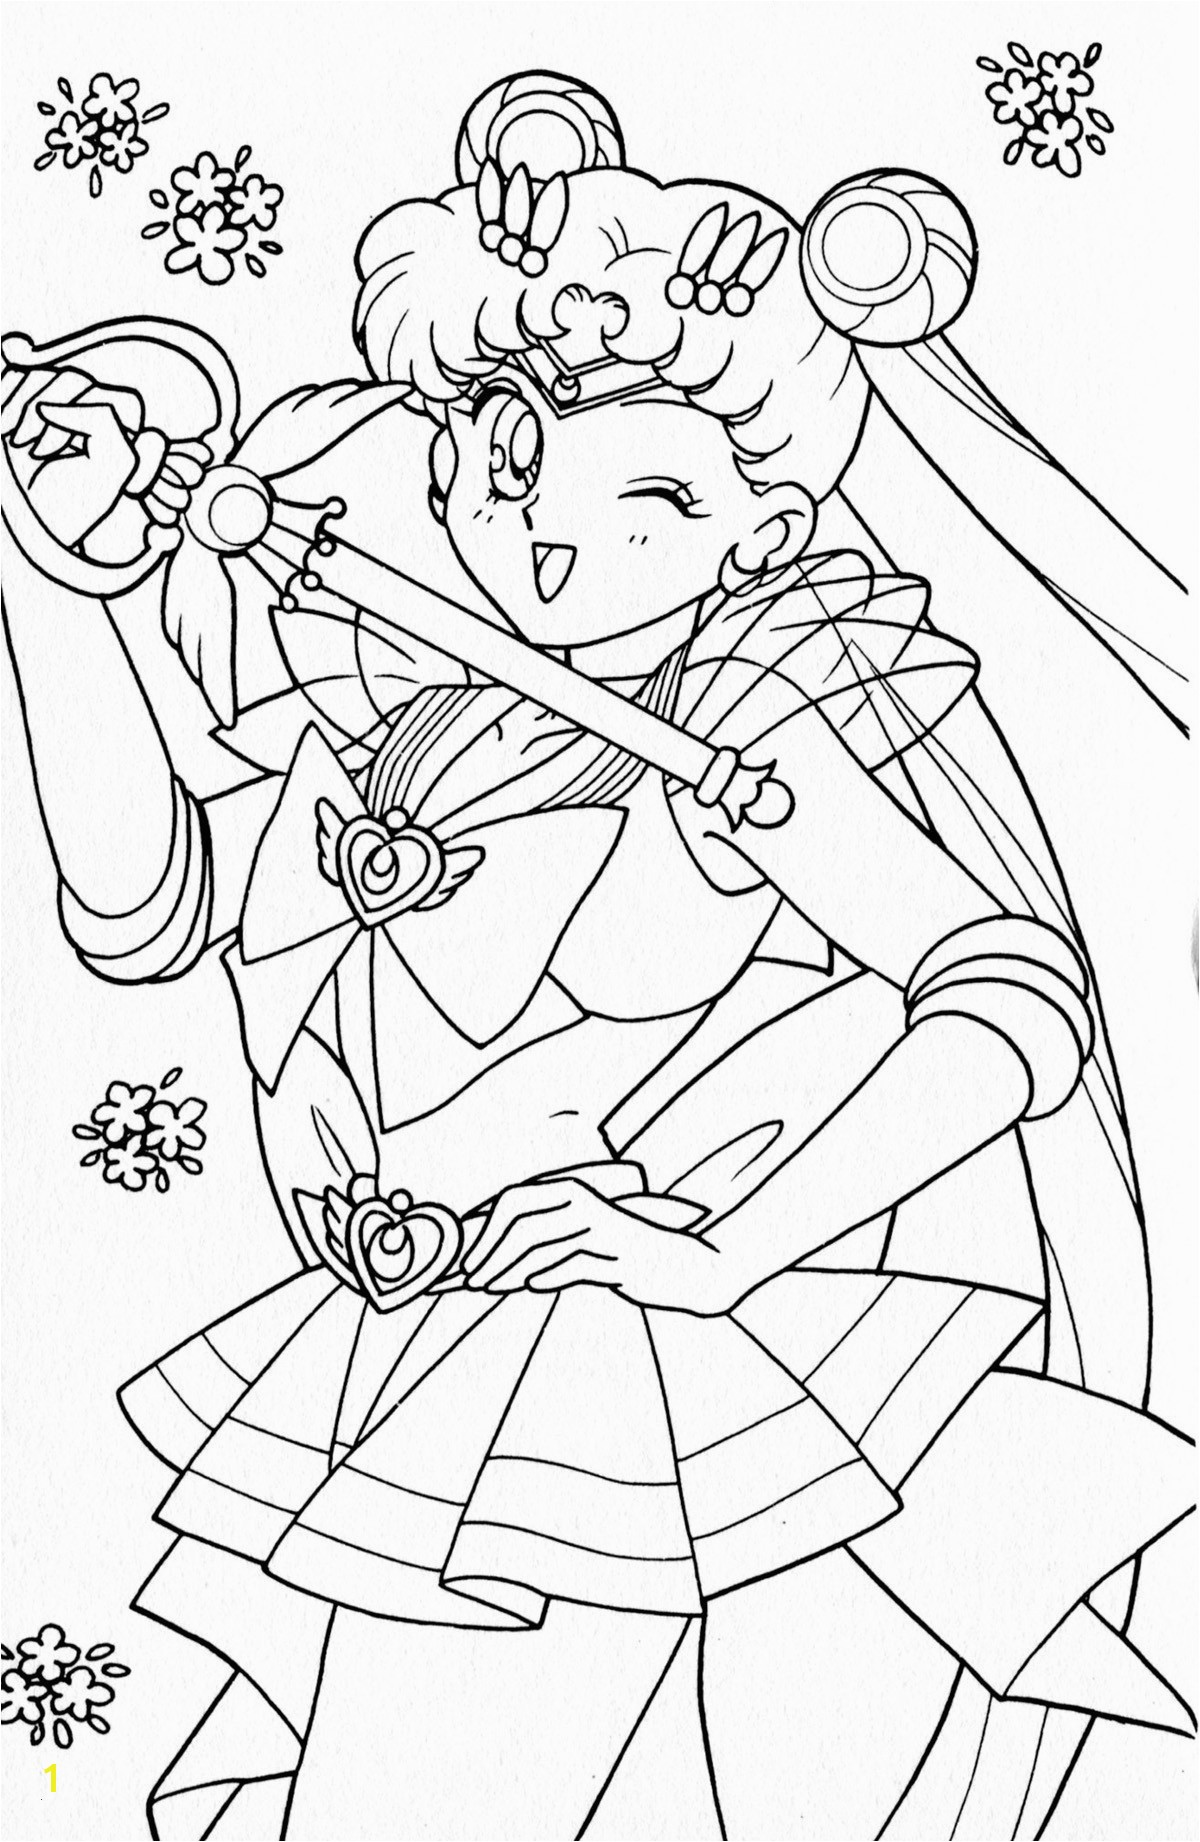 Sailor Moon Coloring Pages Best Sailor Moon Coloring Pages New Cowboys From toy Story Coloring